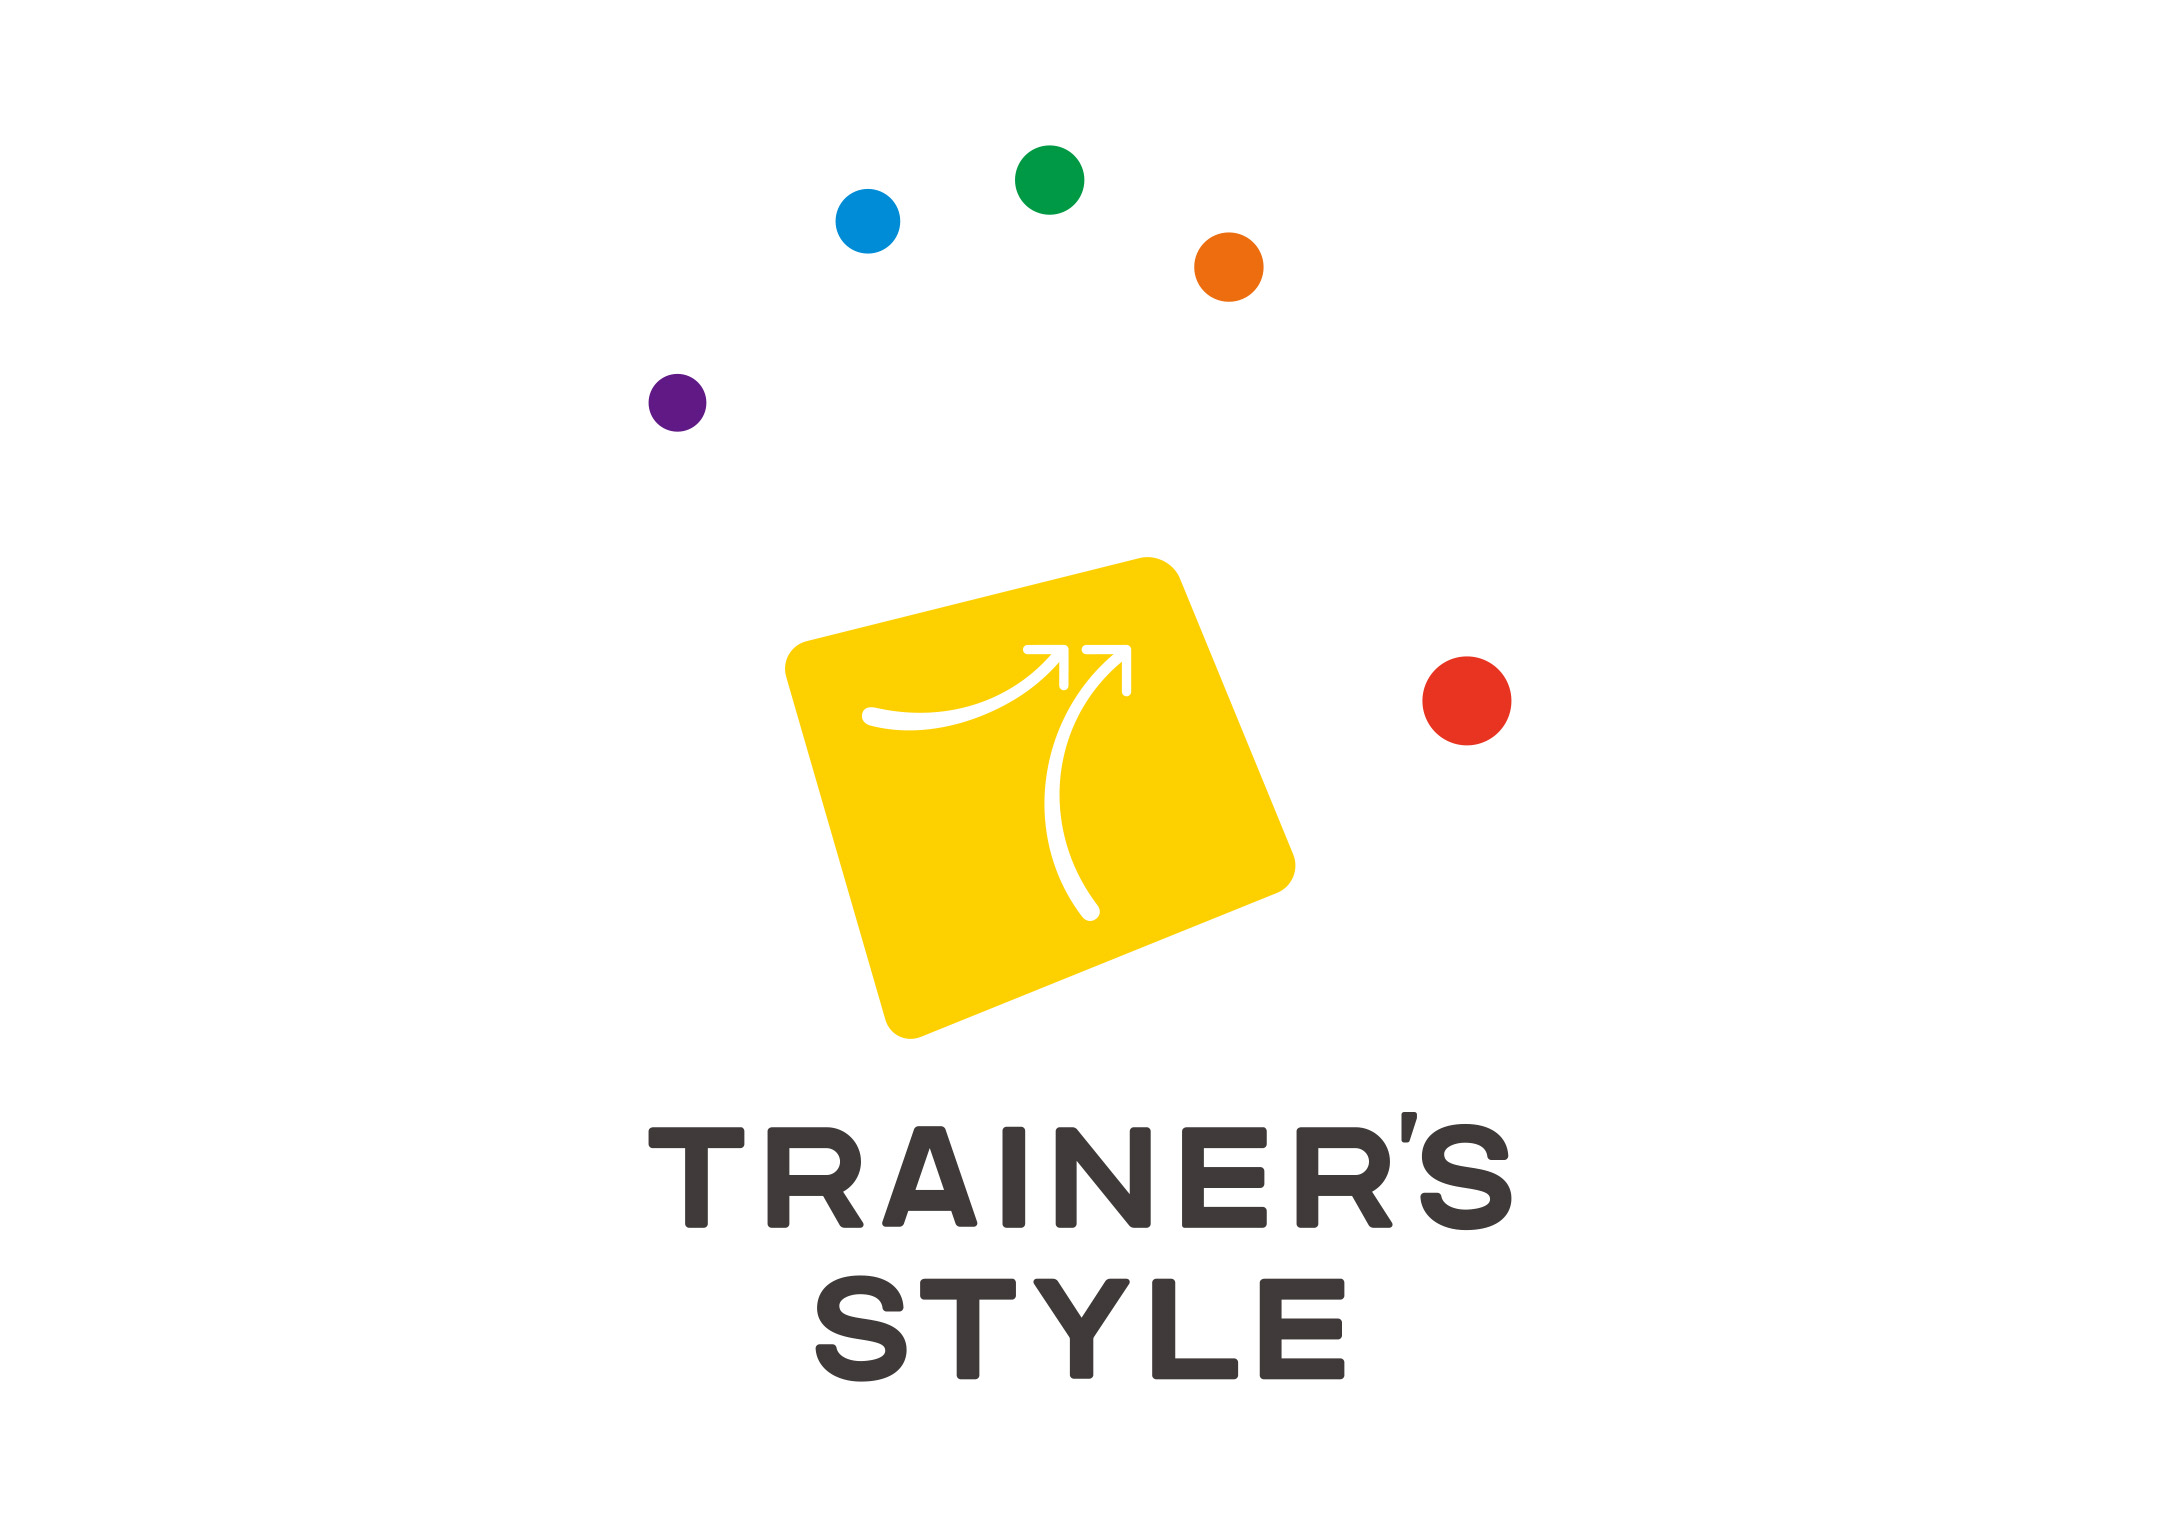 TRAINER'S STYLE